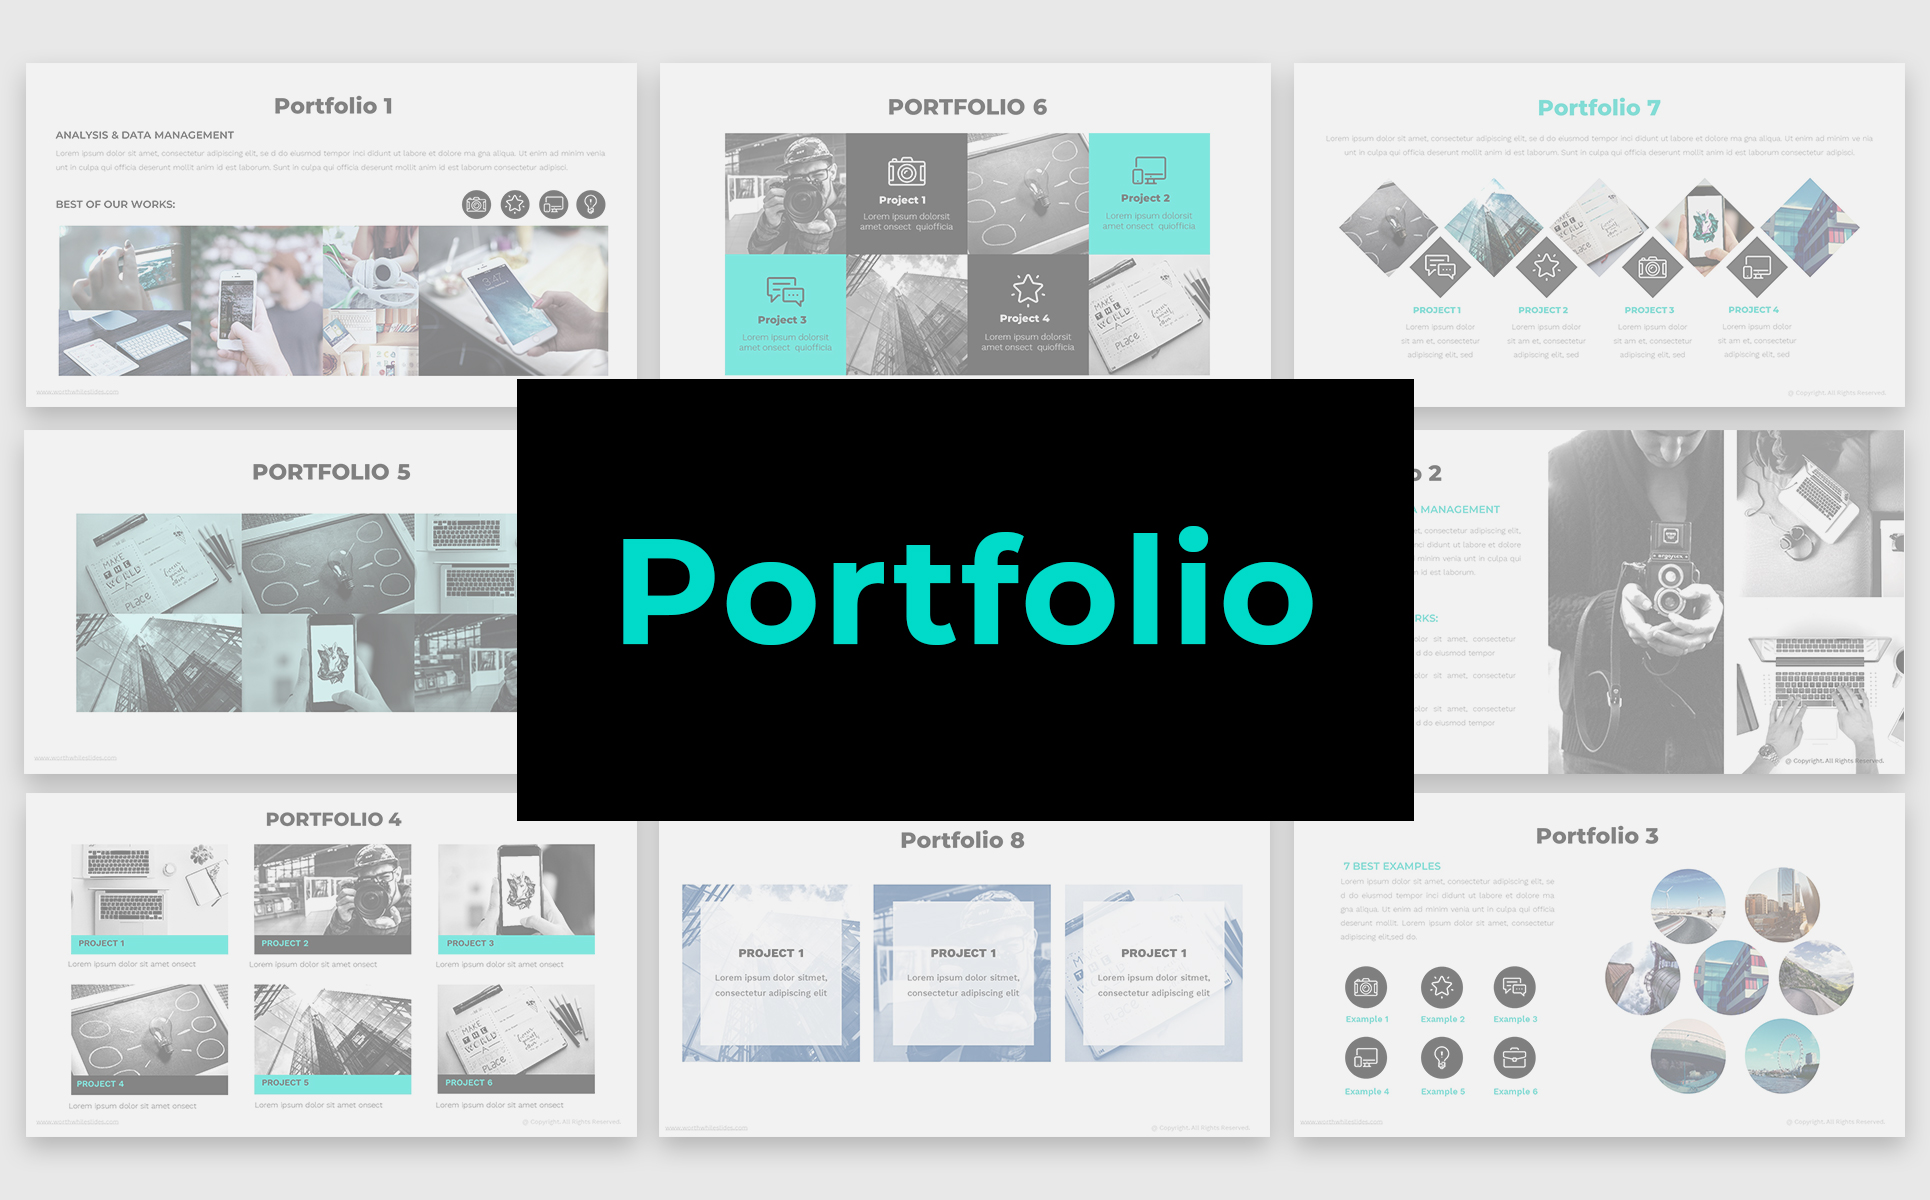 Worthwhile consulting ppt design powerpoint template 66801 zoom in alramifo Choice Image